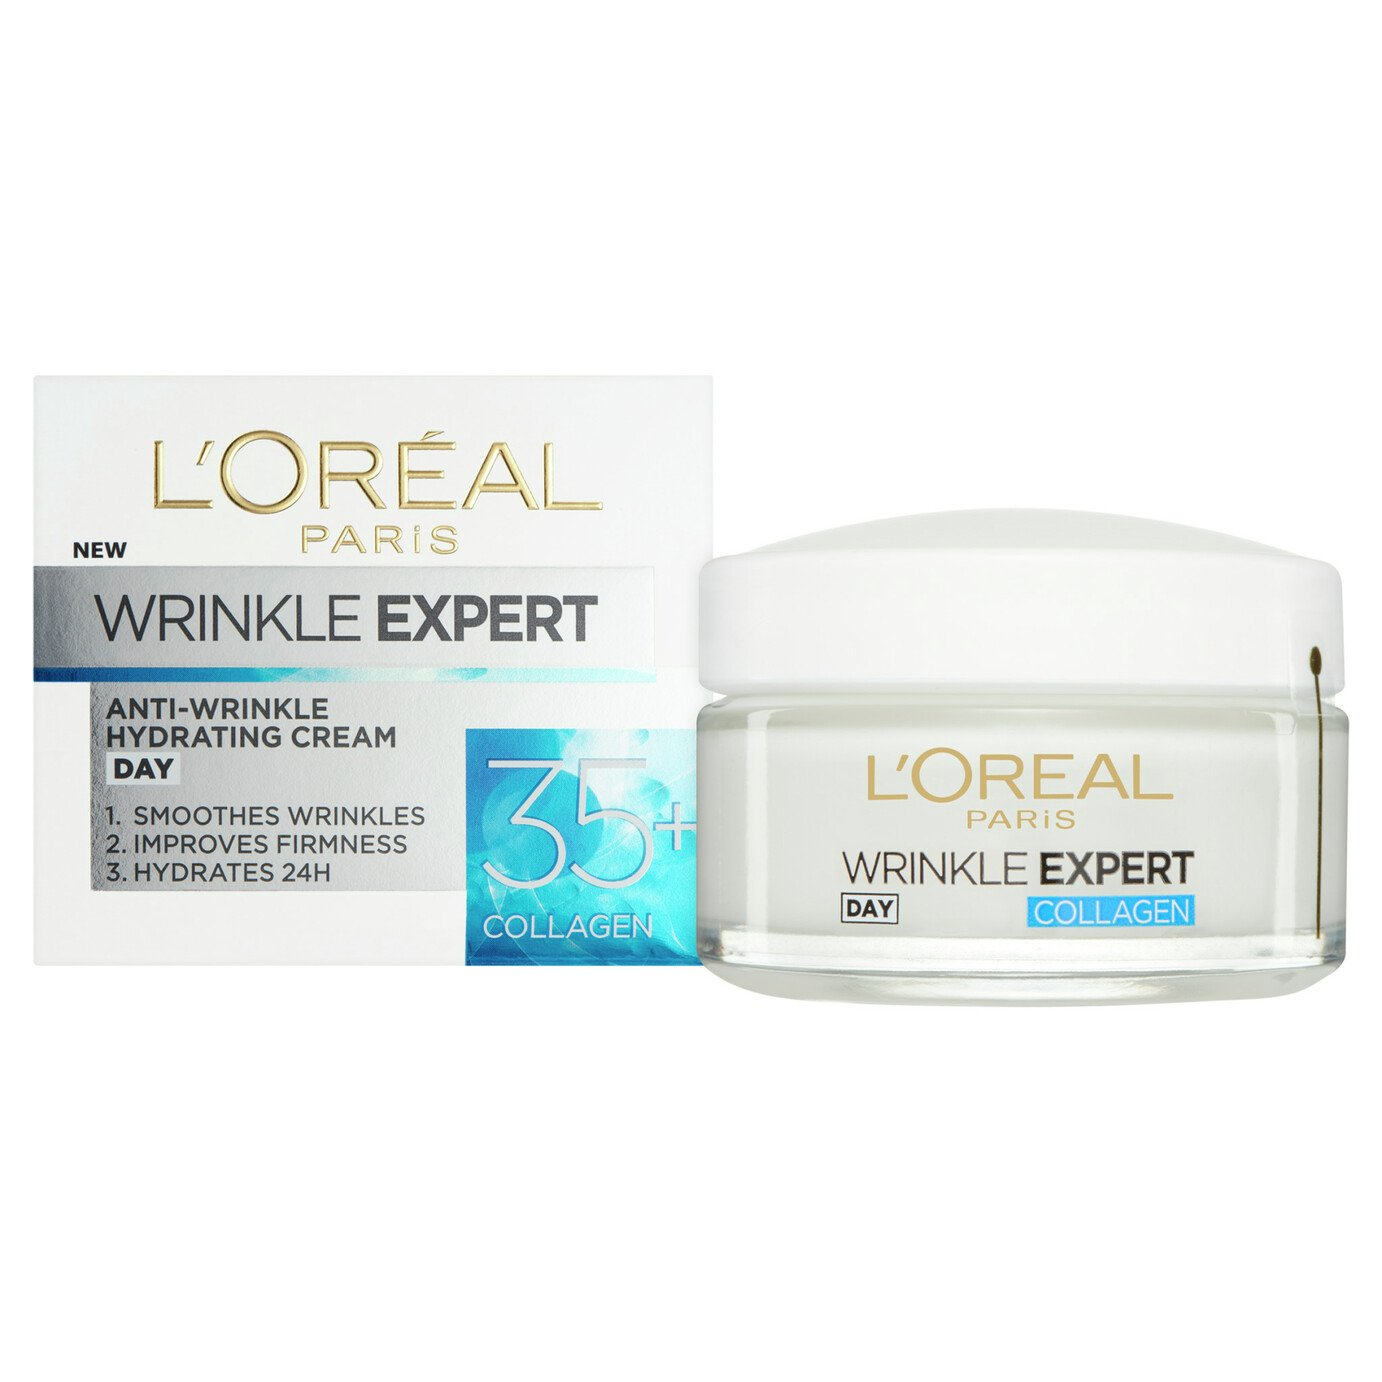 L'Oreal De Wrinkle Expert 35+ Day Cream - 50ml